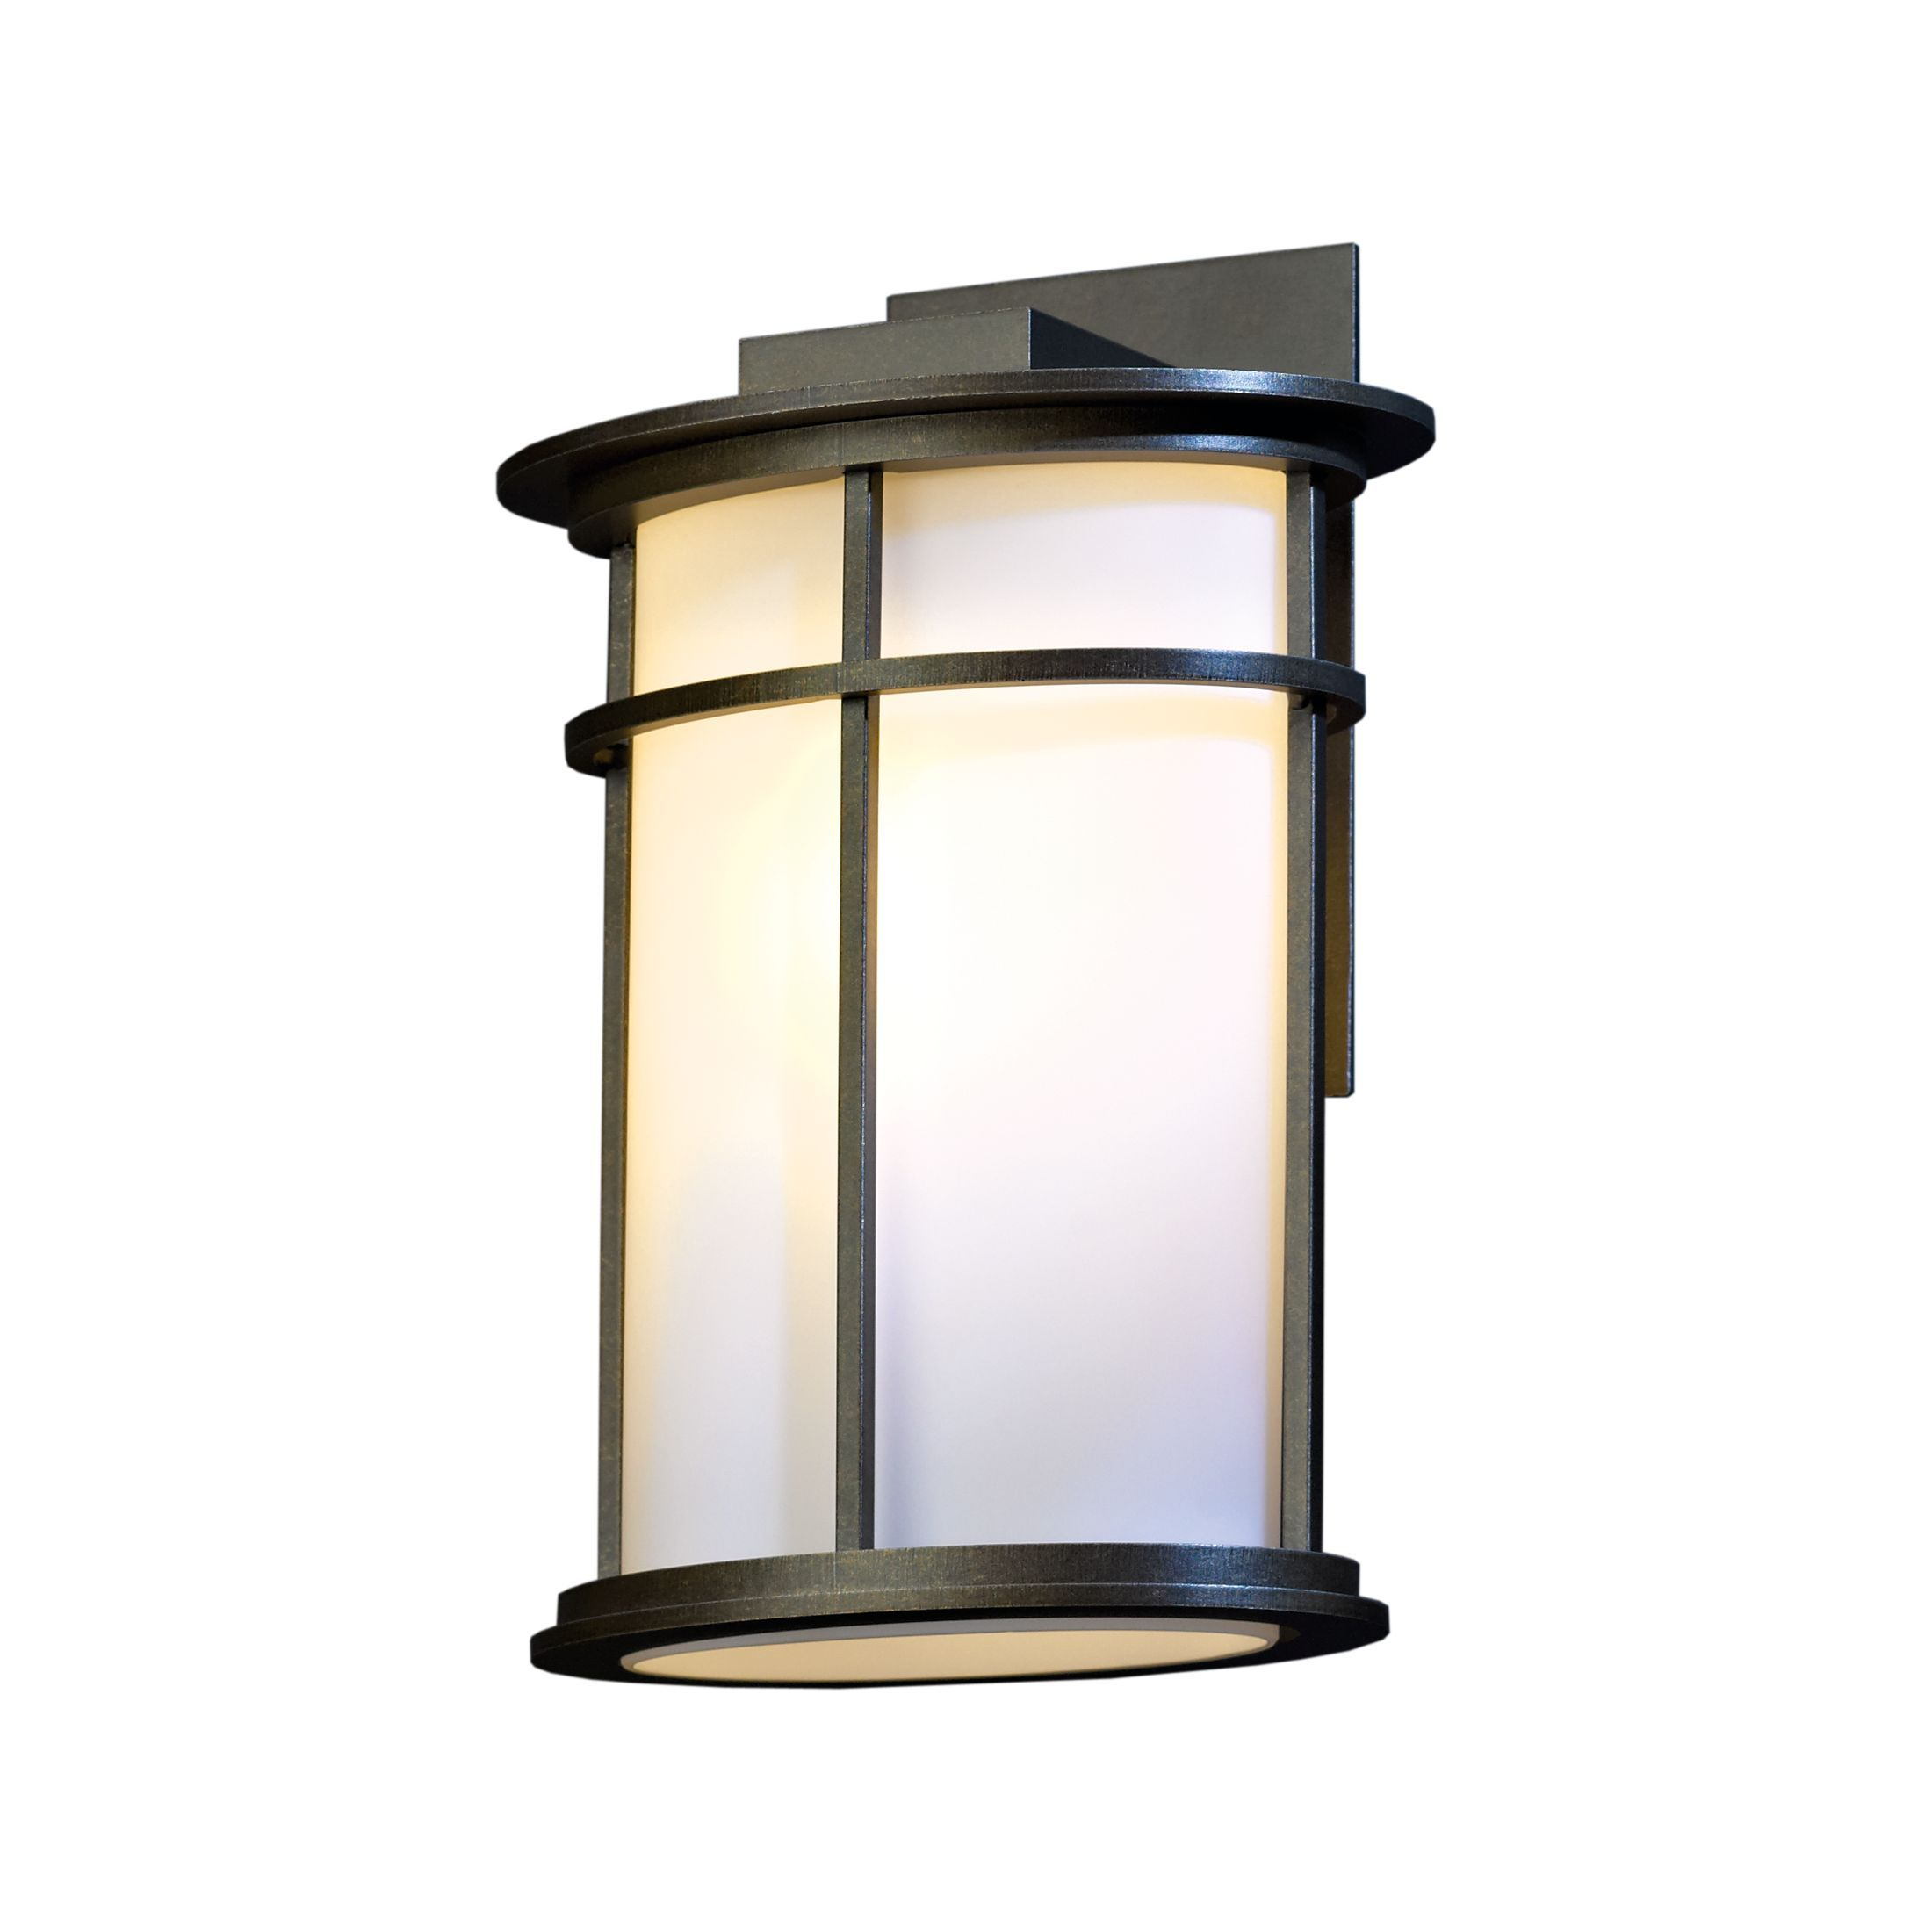 lanterns exterior light contemporary mount led lighting fixtures install photo lights motion reasons wall sensor mounted with sconce sconces to commercial outdoor glass